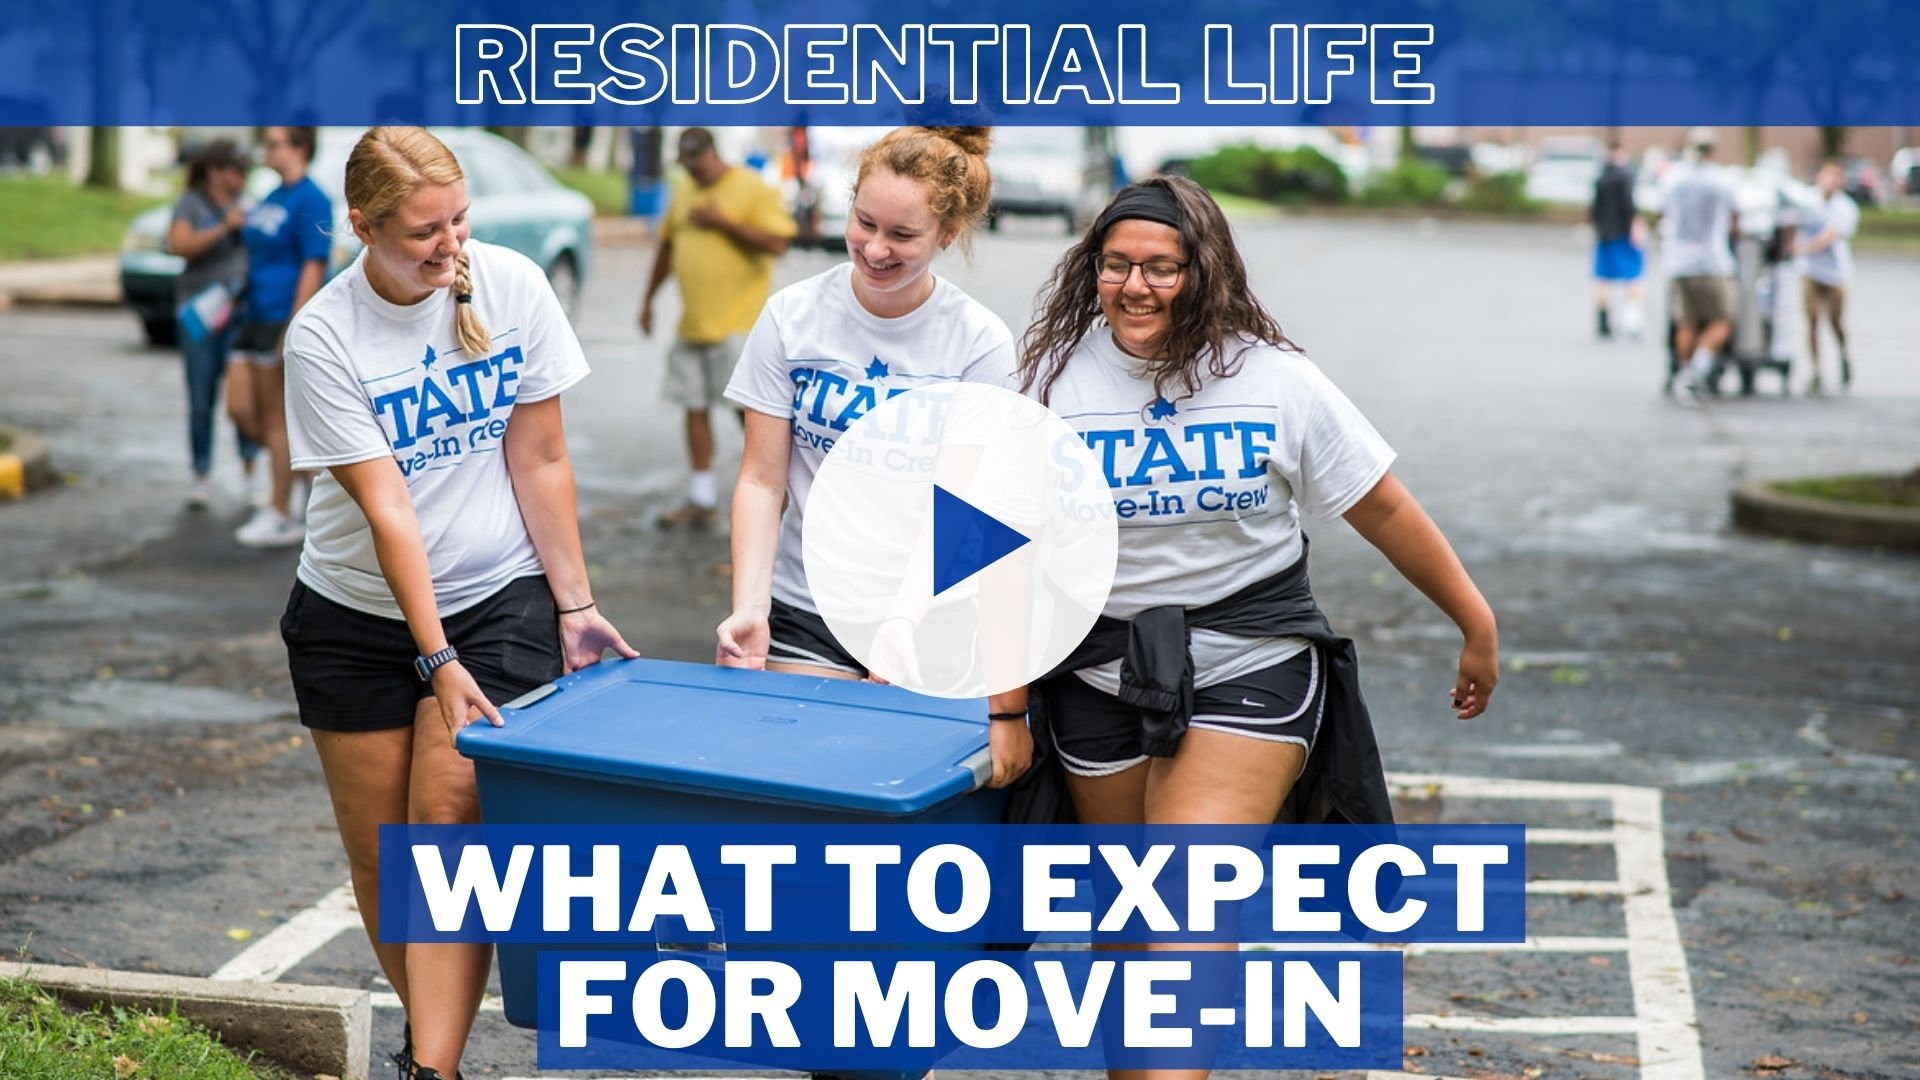 What to Expect for Move-In (Residential Life)